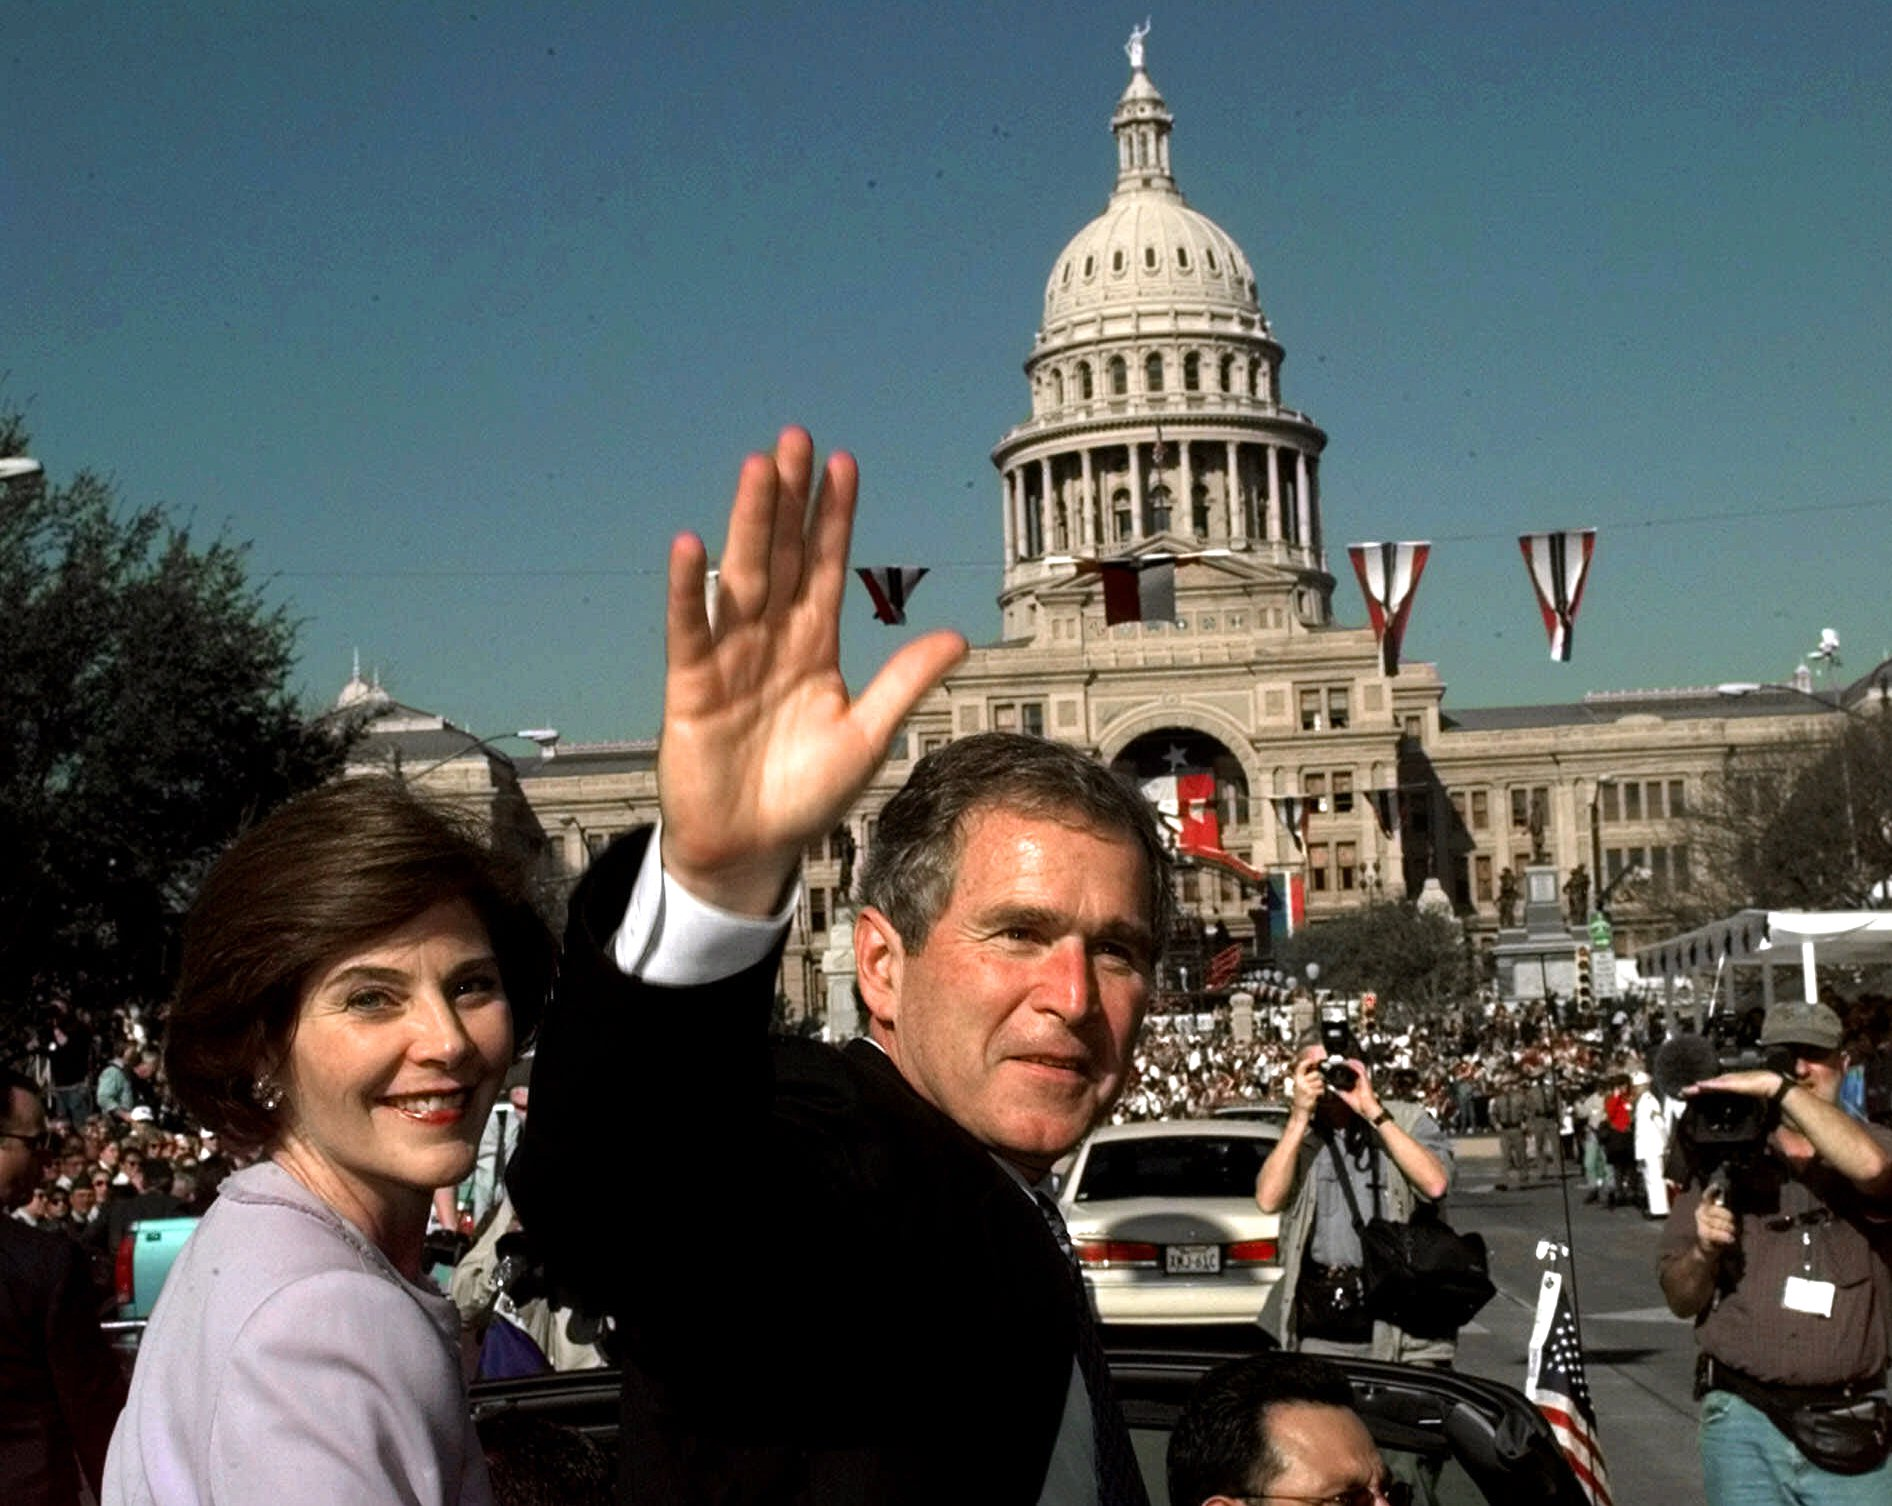 <div class='meta'><div class='origin-logo' data-origin='none'></div><span class='caption-text' data-credit='ASSOCIATED PRESS'>Texas Gov. George W. Bush, and his wife Laura ride in the inaugural parade with the Capitol in the background Tuesday, Jan. 19, 1999, in Austin, Texas.</span></div>